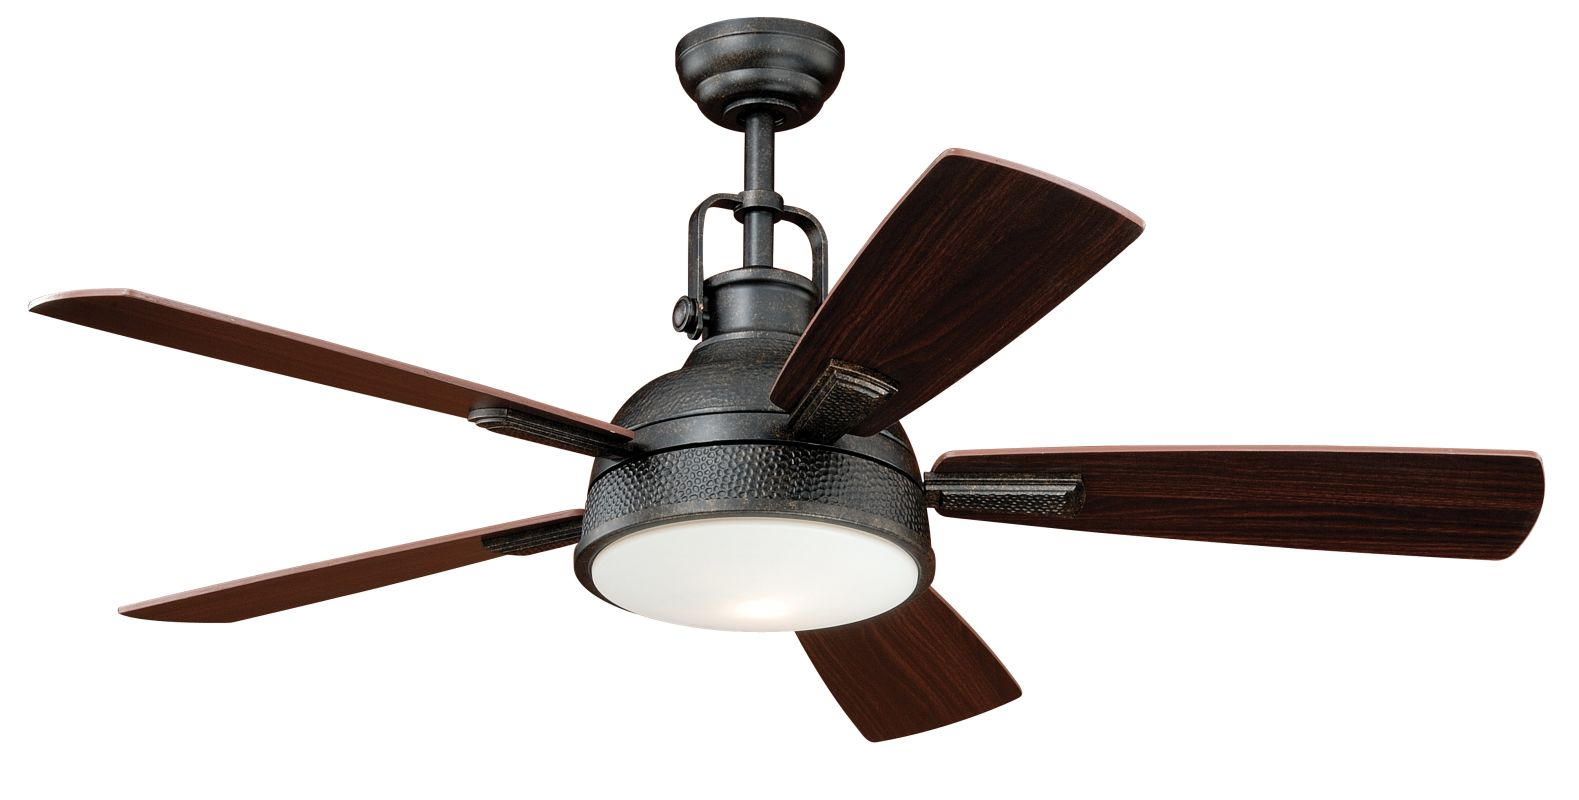 "Vaxcel Lighting F0033 Walton 52"" 5 Blade Indoor Ceiling Fan - Light"